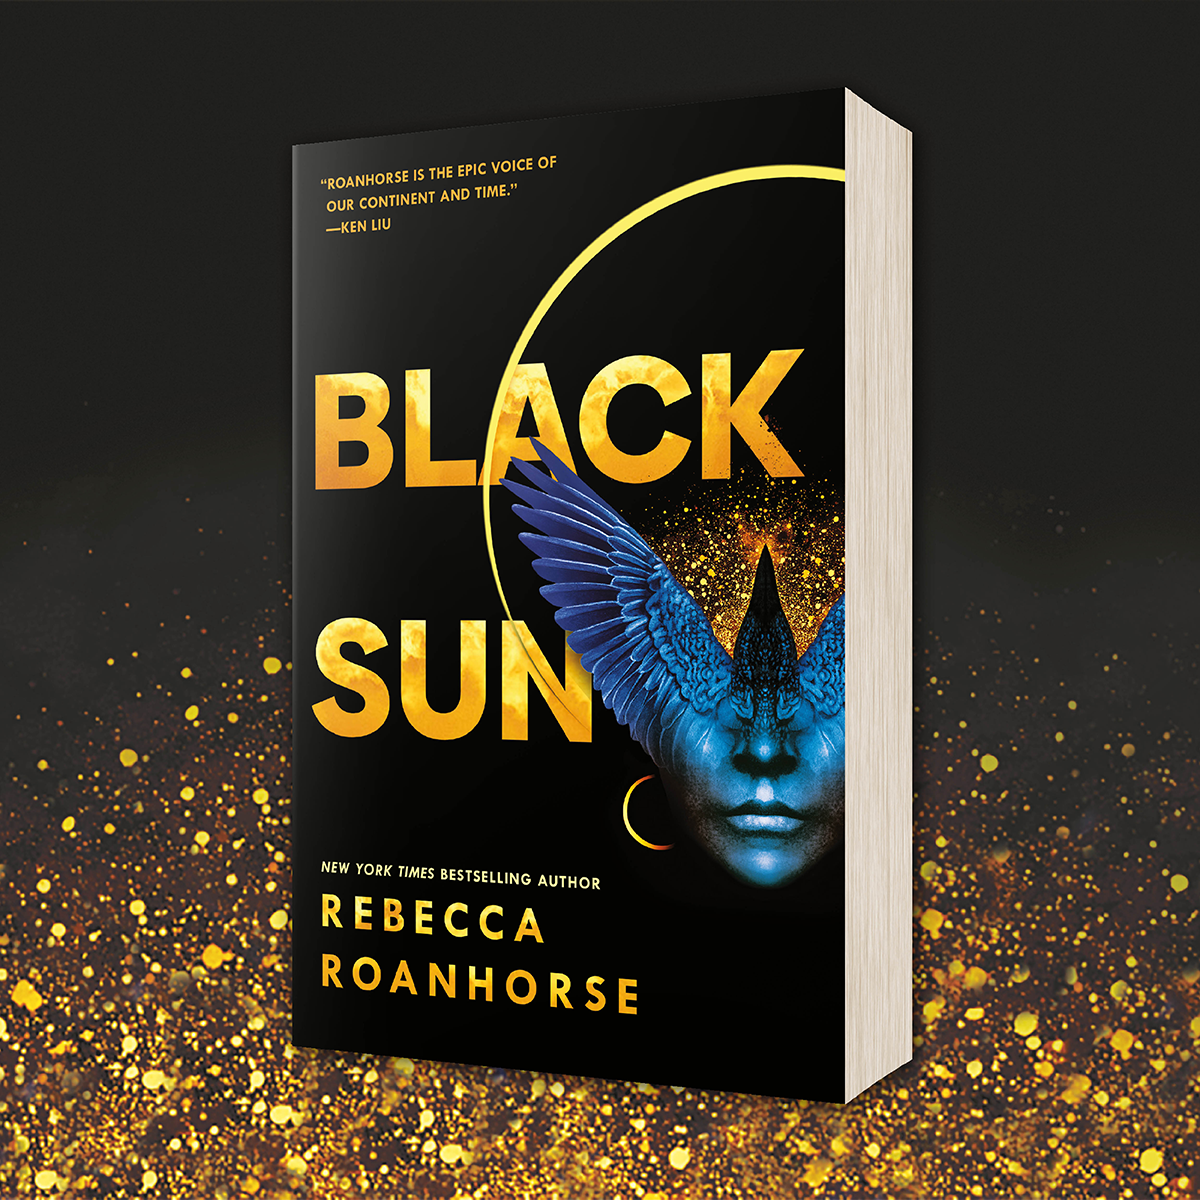 OUT NOW: Black Sun by Rebecca Roanhorse (UK)